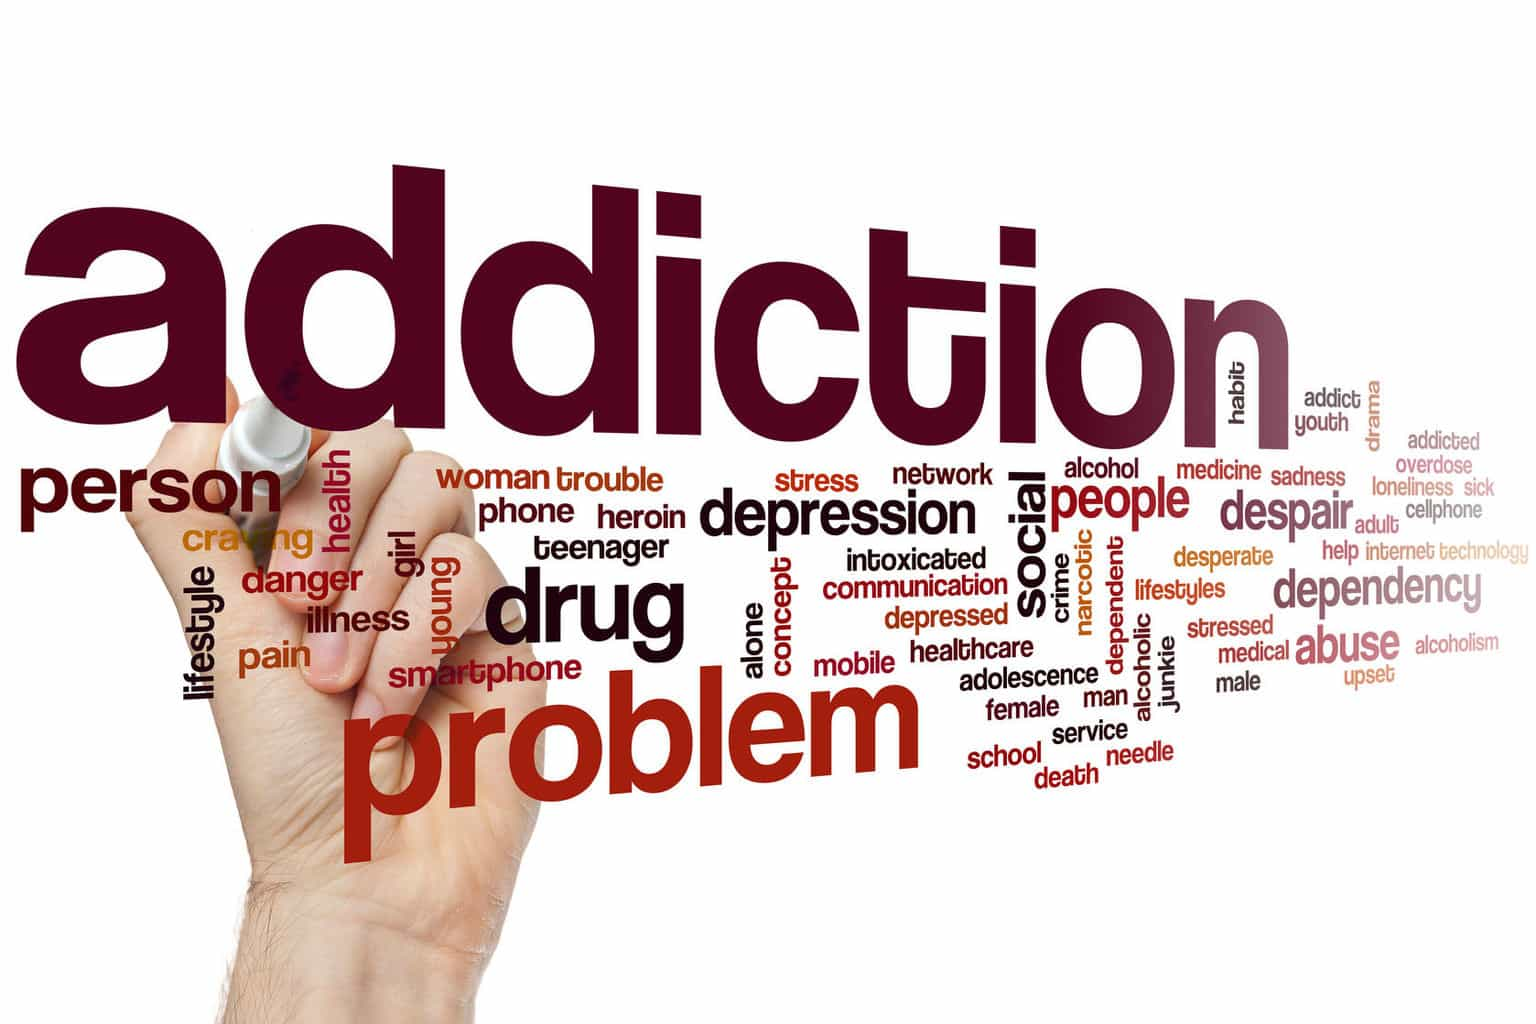 How to stop addiction